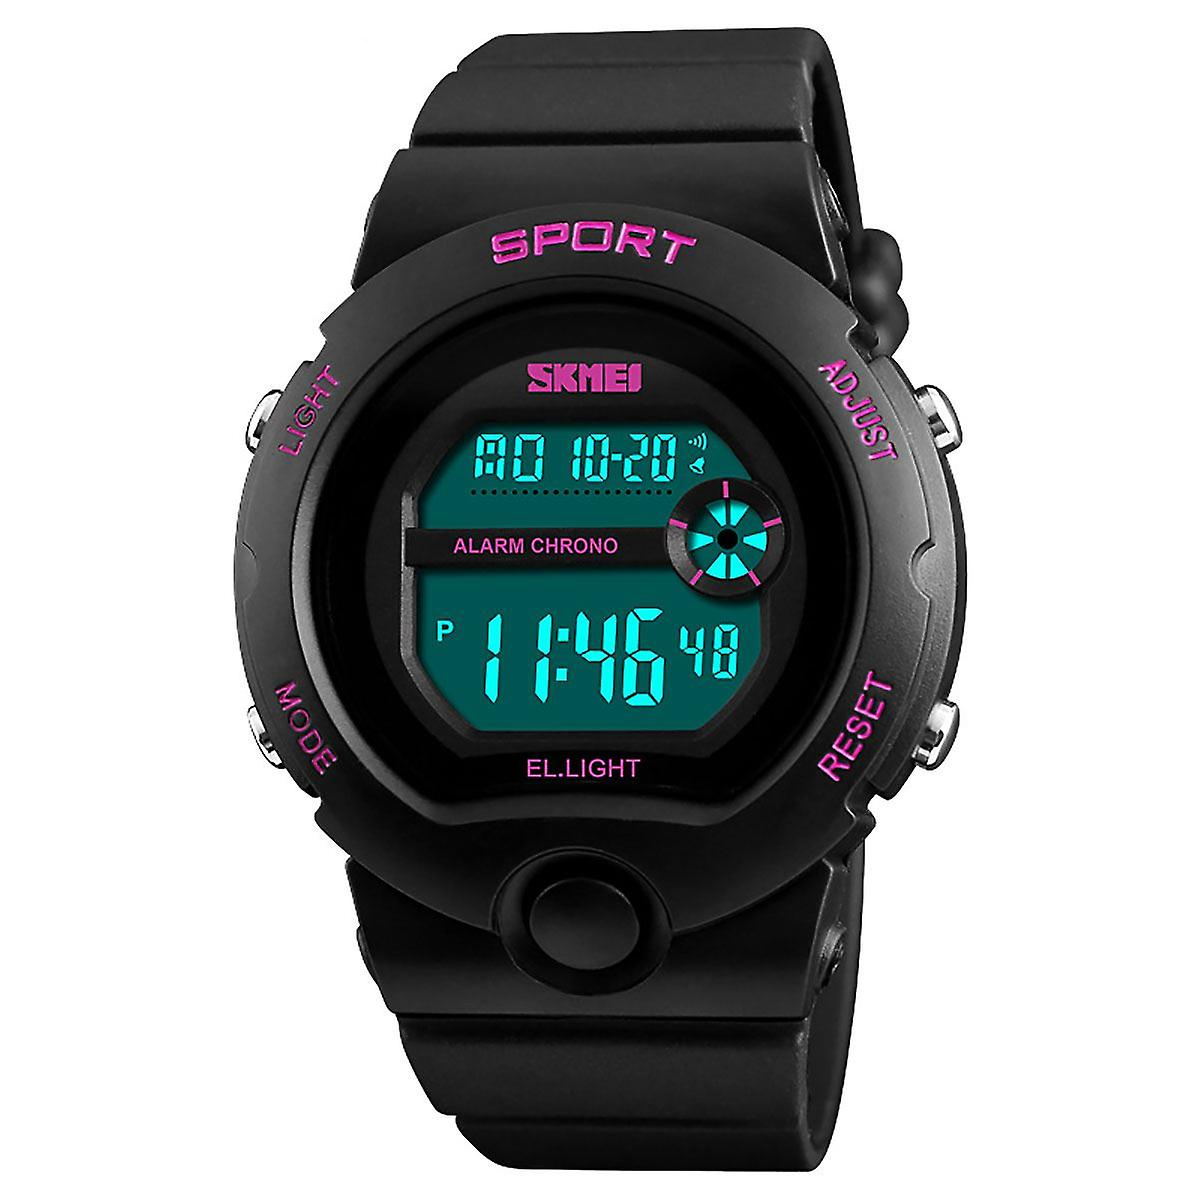 SKMEI Girls Black Digital With Pink Markers Watch 50m Water Resistant With Stopwatch Alarm Perfect For Ages 5-13 DG1334B